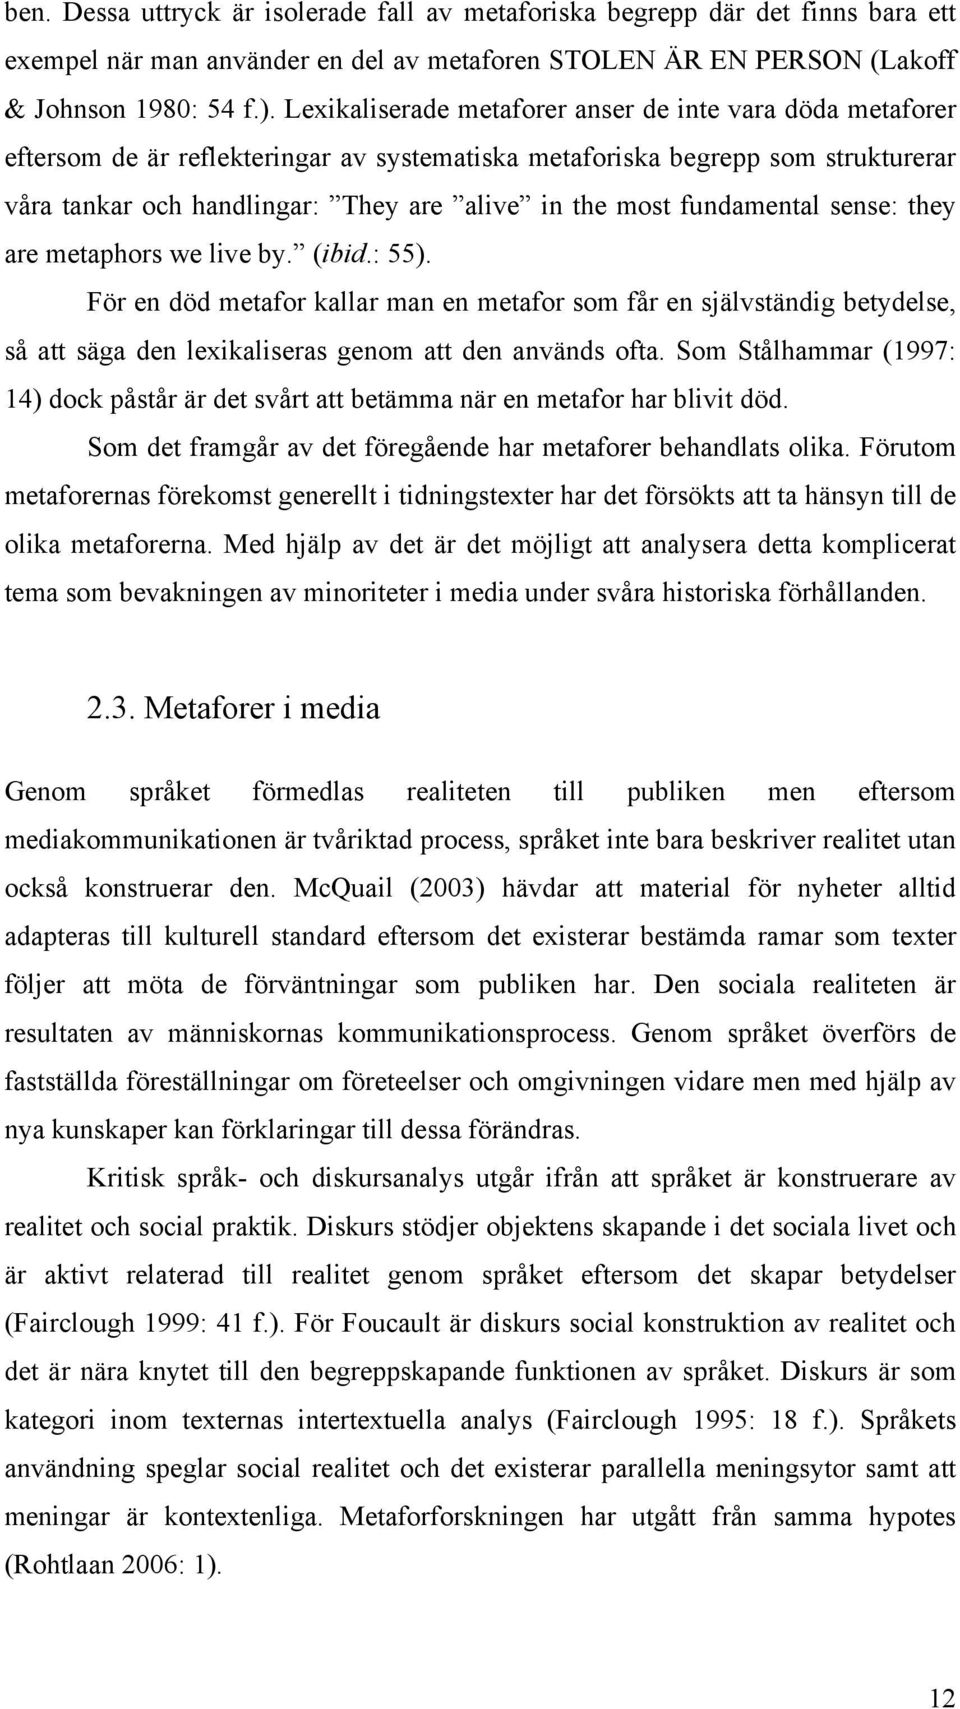 fundamental sense: they are metaphors we live by. (ibid.: 55). För en död metafor kallar man en metafor som får en självständig betydelse, så att säga den lexikaliseras genom att den används ofta.